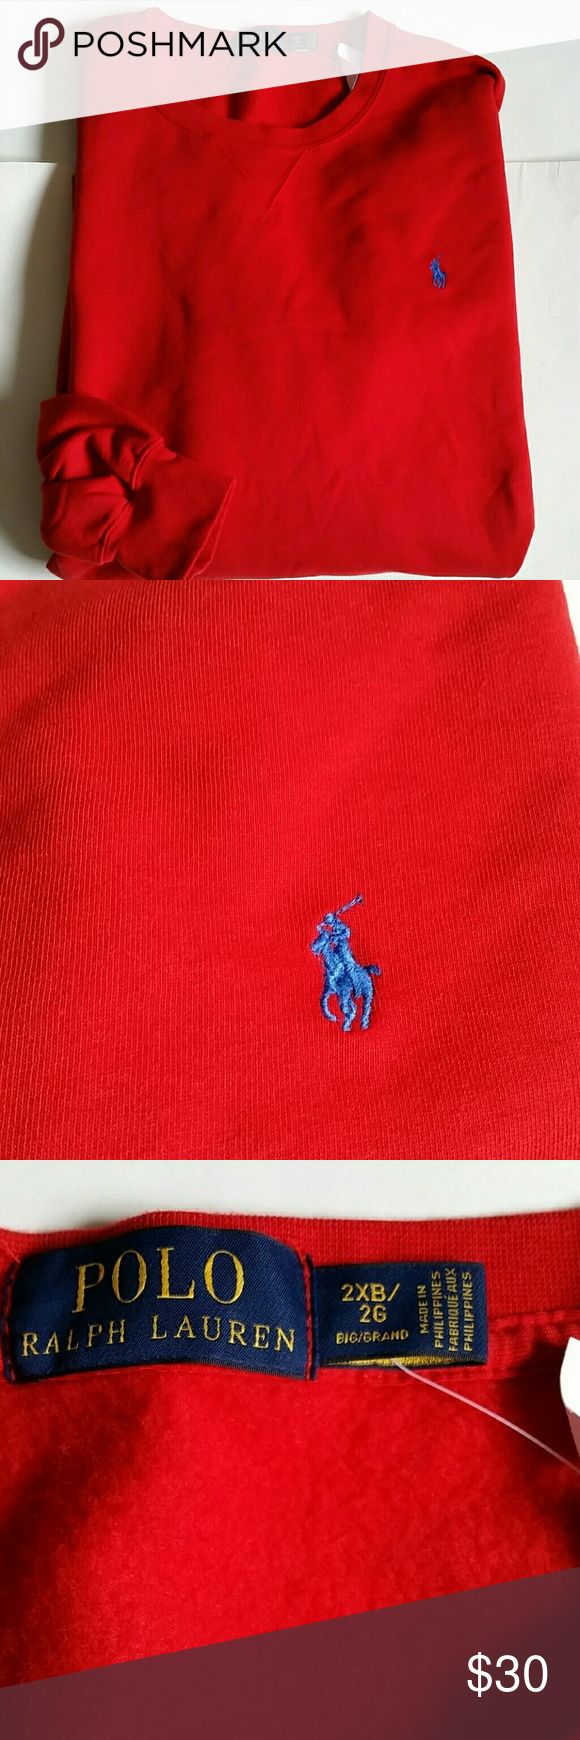 Polo Ralph Lauren sweat shirt sweater big & tall New with tags, classic fit  All sizes are big and tall (2XB,  2XLT,  3xb, 3XLT ) Please let me know what size you want  before to buy Polo by Ralph Lauren Shirts Sweatshirts & Hoodies